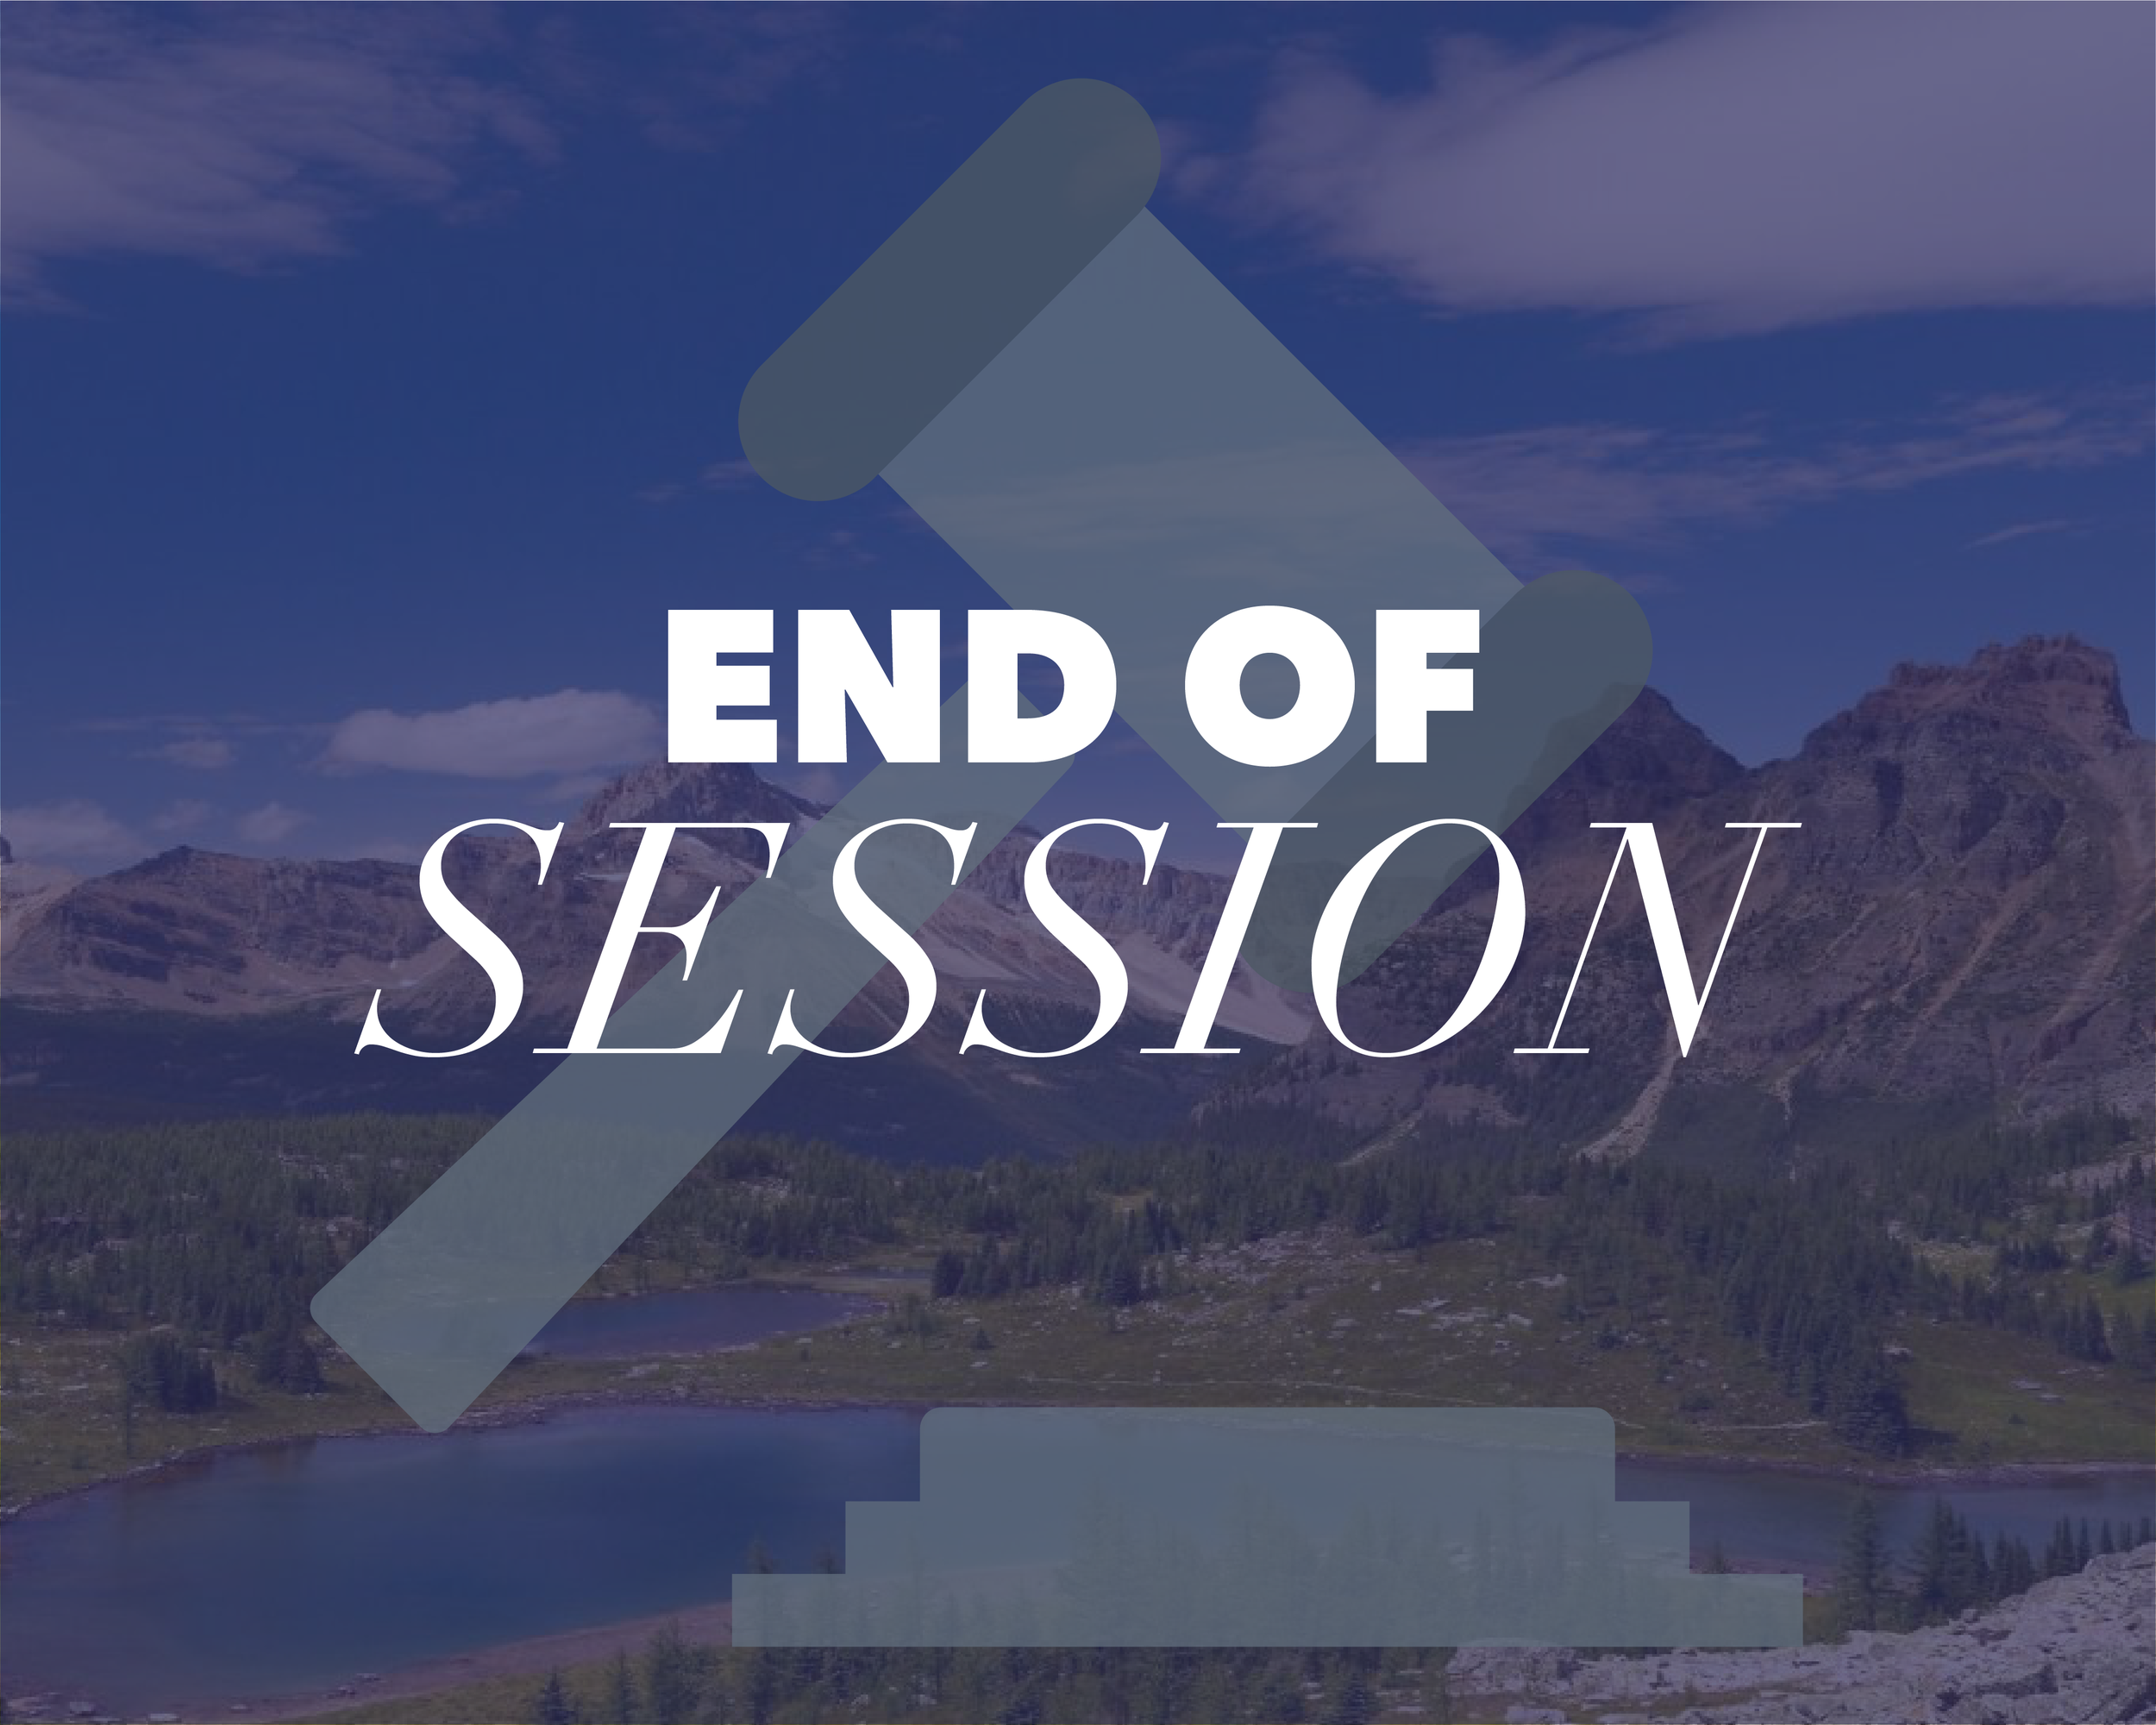 20190411 end_of_session_2-01.png